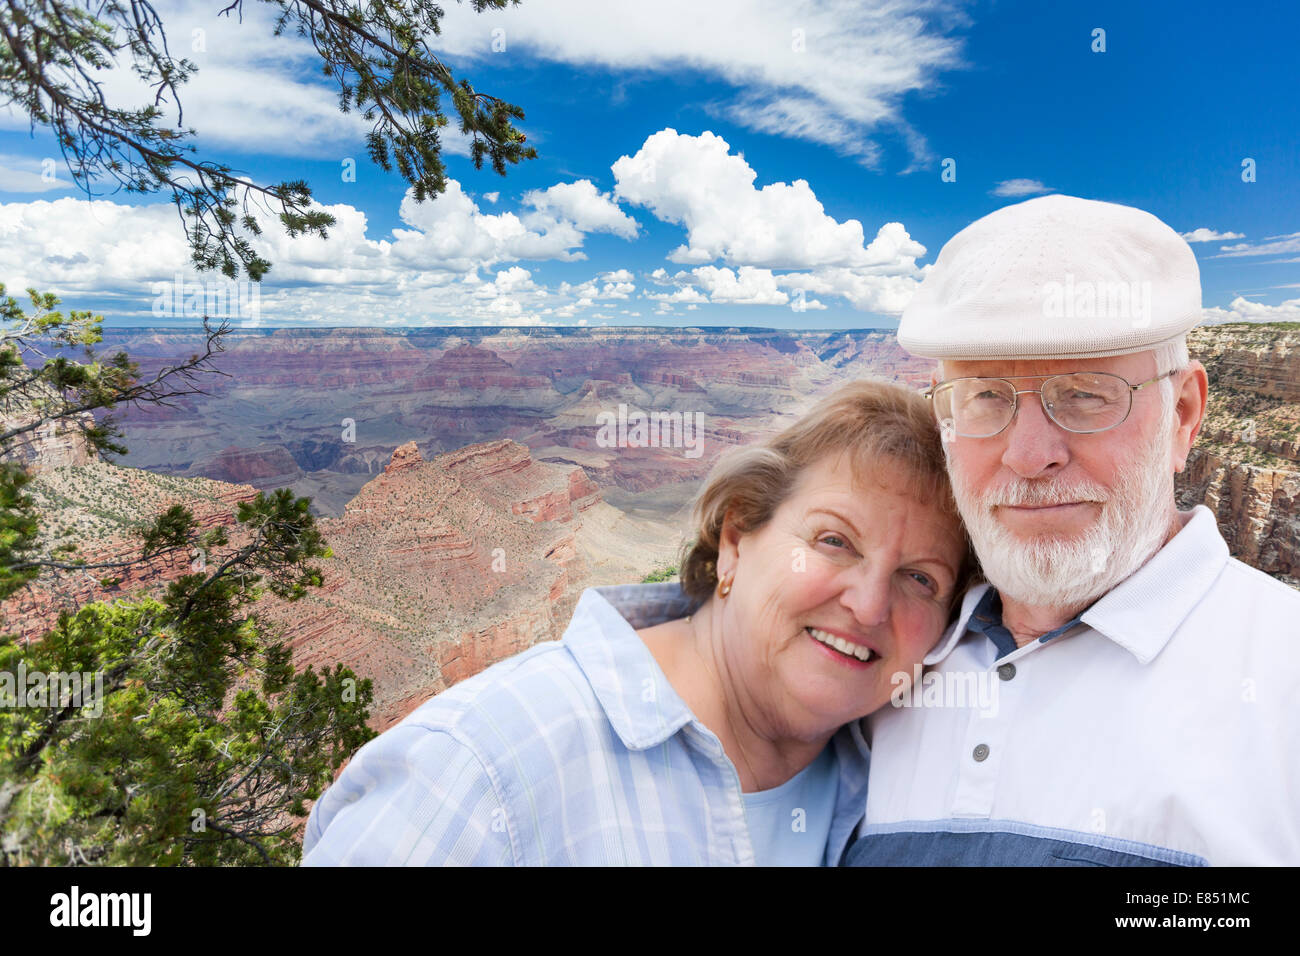 Happy, Hugging Senior Couple Posing on the Edge of The Grand Canyon. - Stock Image